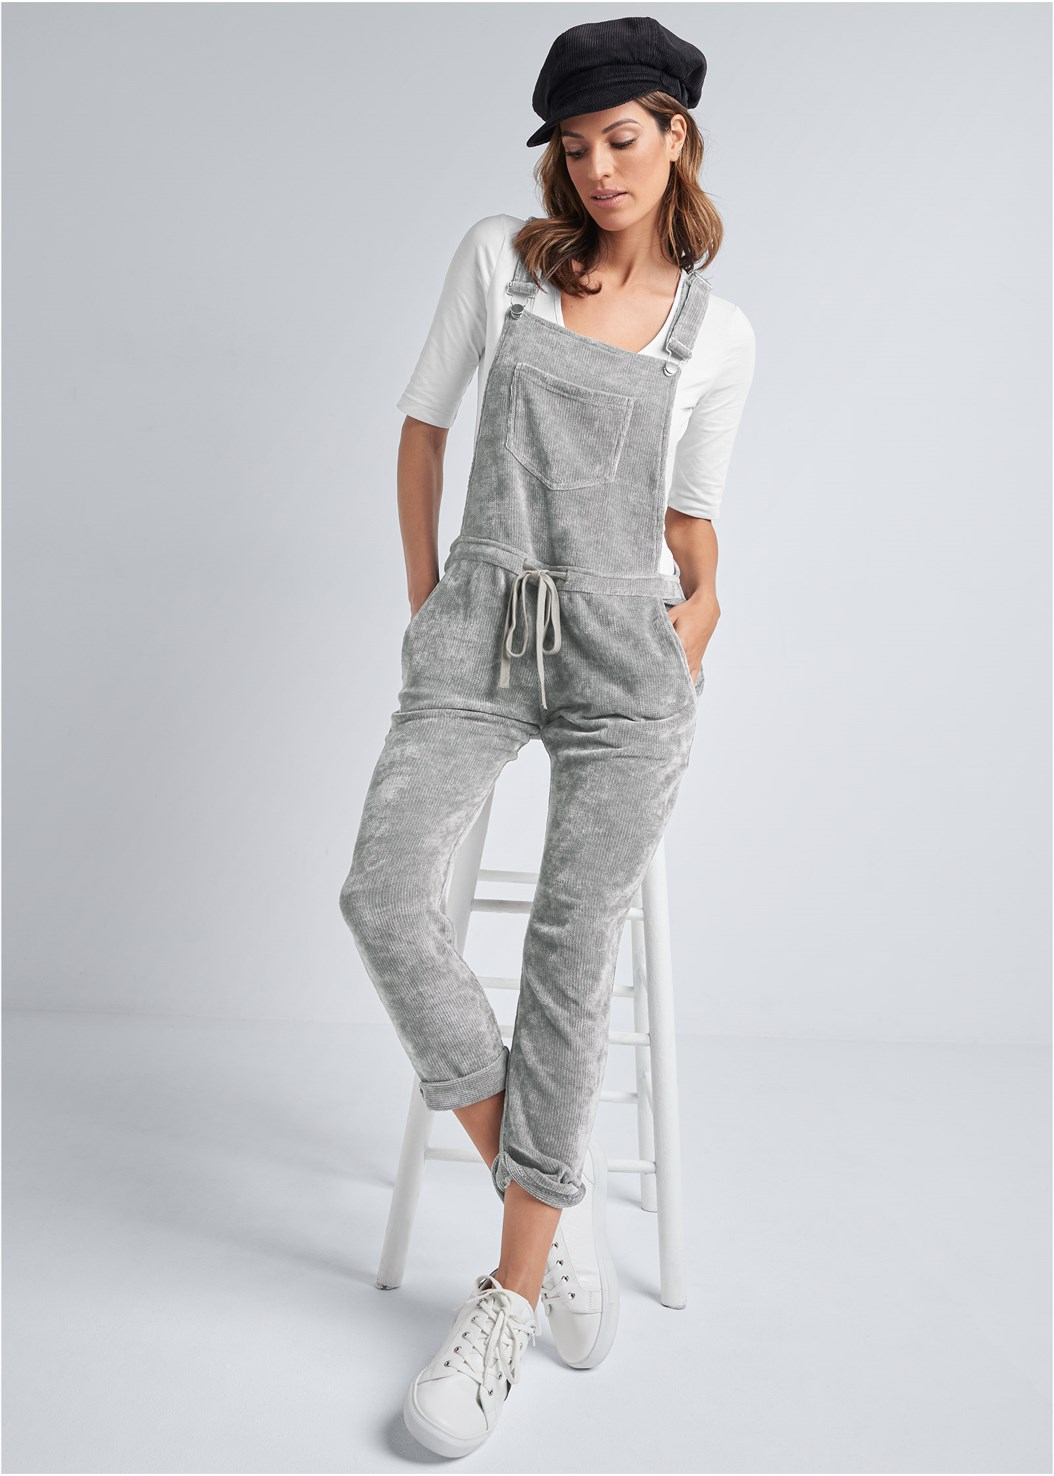 Chenille Lounge Overalls,Long And Lean V-Neck Tee,Seamless Lace Comfort Bra,Embellished Striped Sneaker